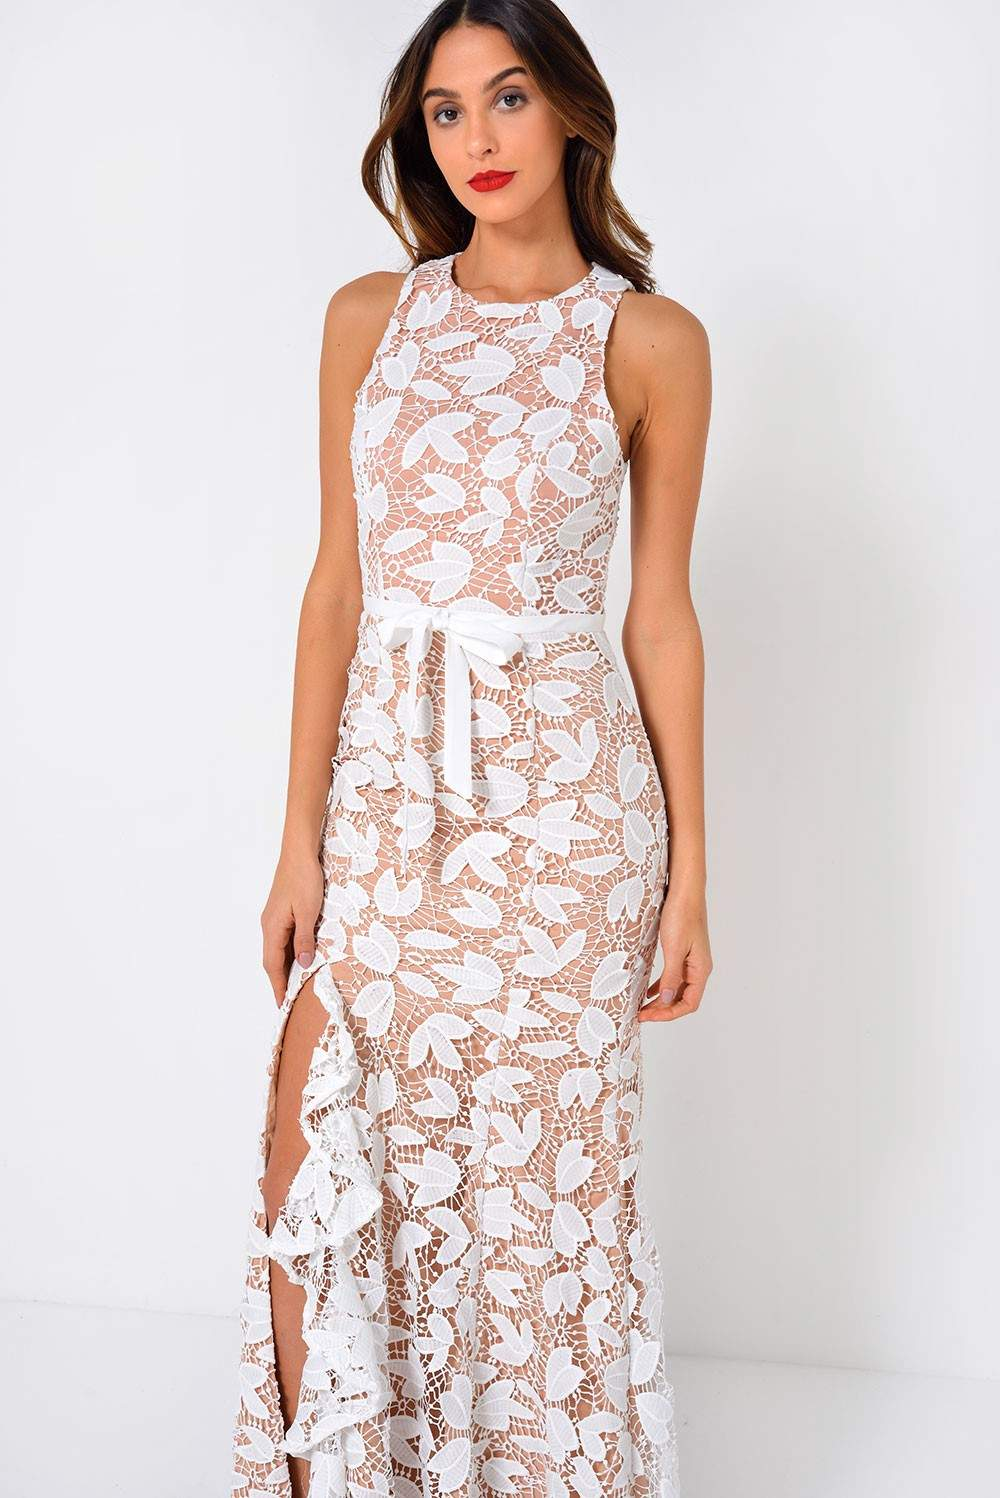 Soho Market Petal Crochet Evening Dress in Ivory and Nude | iCLOTHING